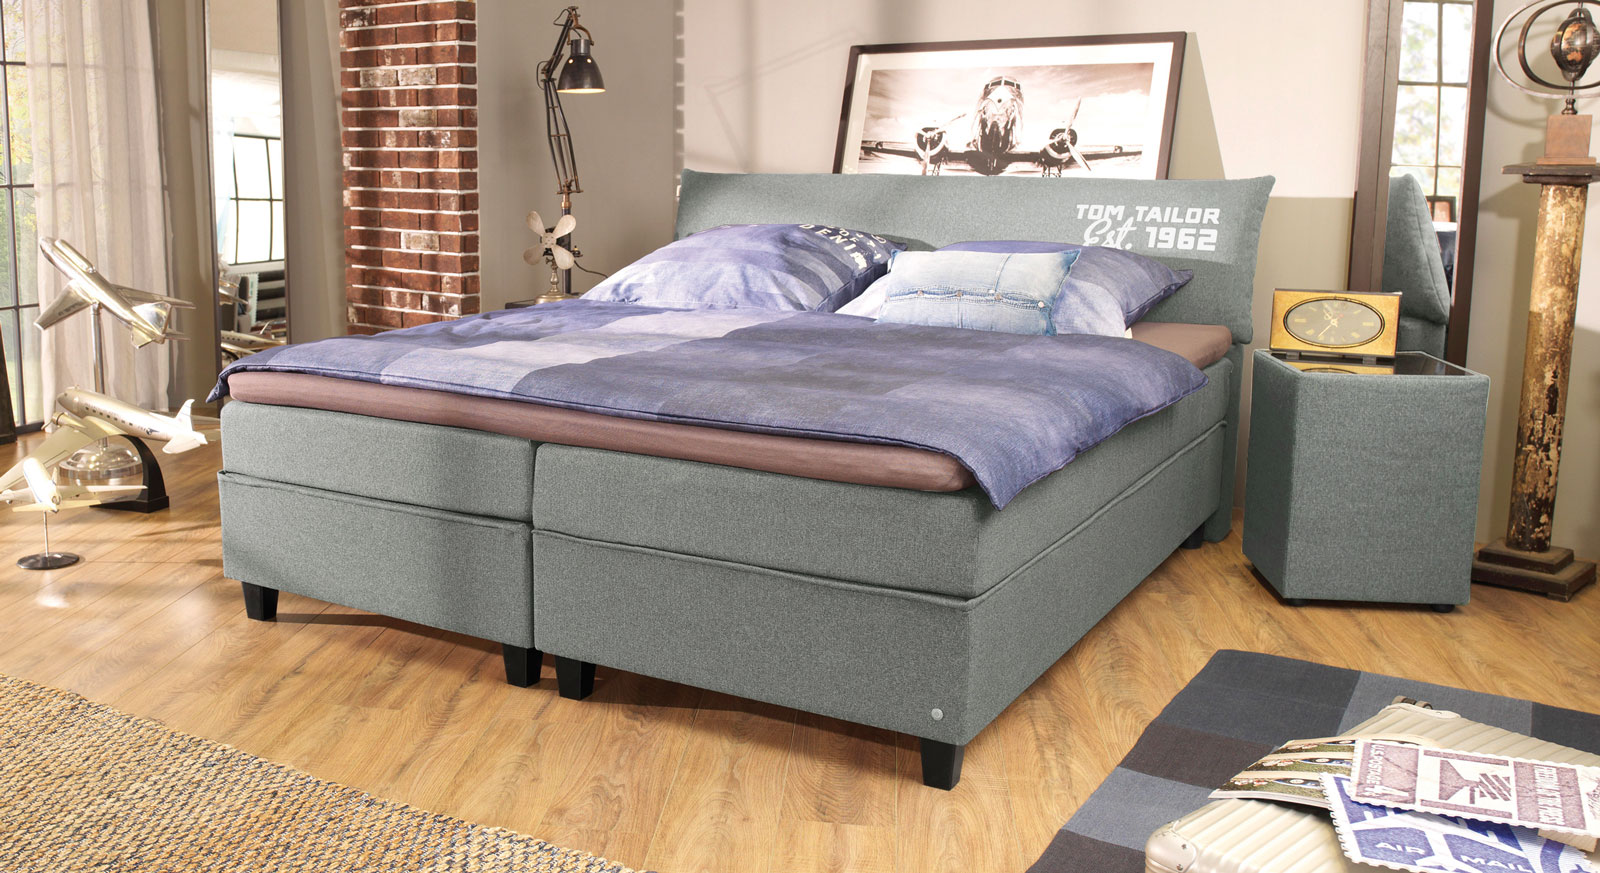 Boxspringbett Tom Tailor Color in Hellgrau mit Aufdruck